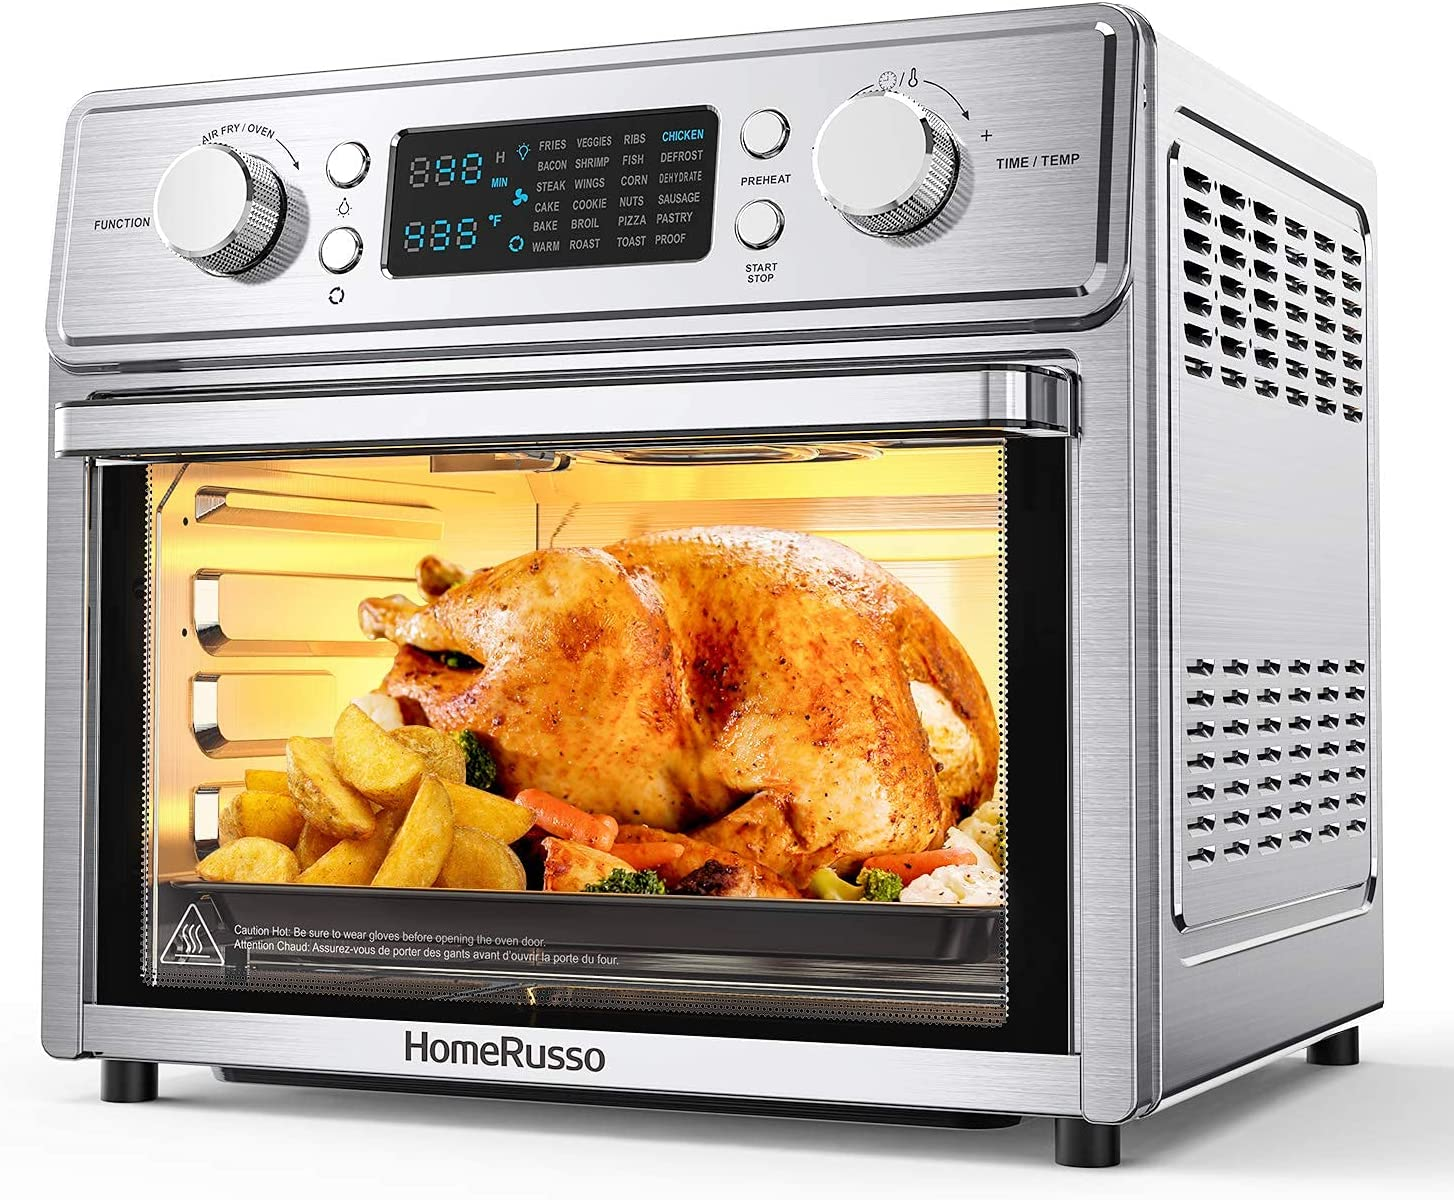 HomeRusso 24-in-1 Industry No. 1 Air Fryer Oven Quart 26.3 In stock Convection To Large